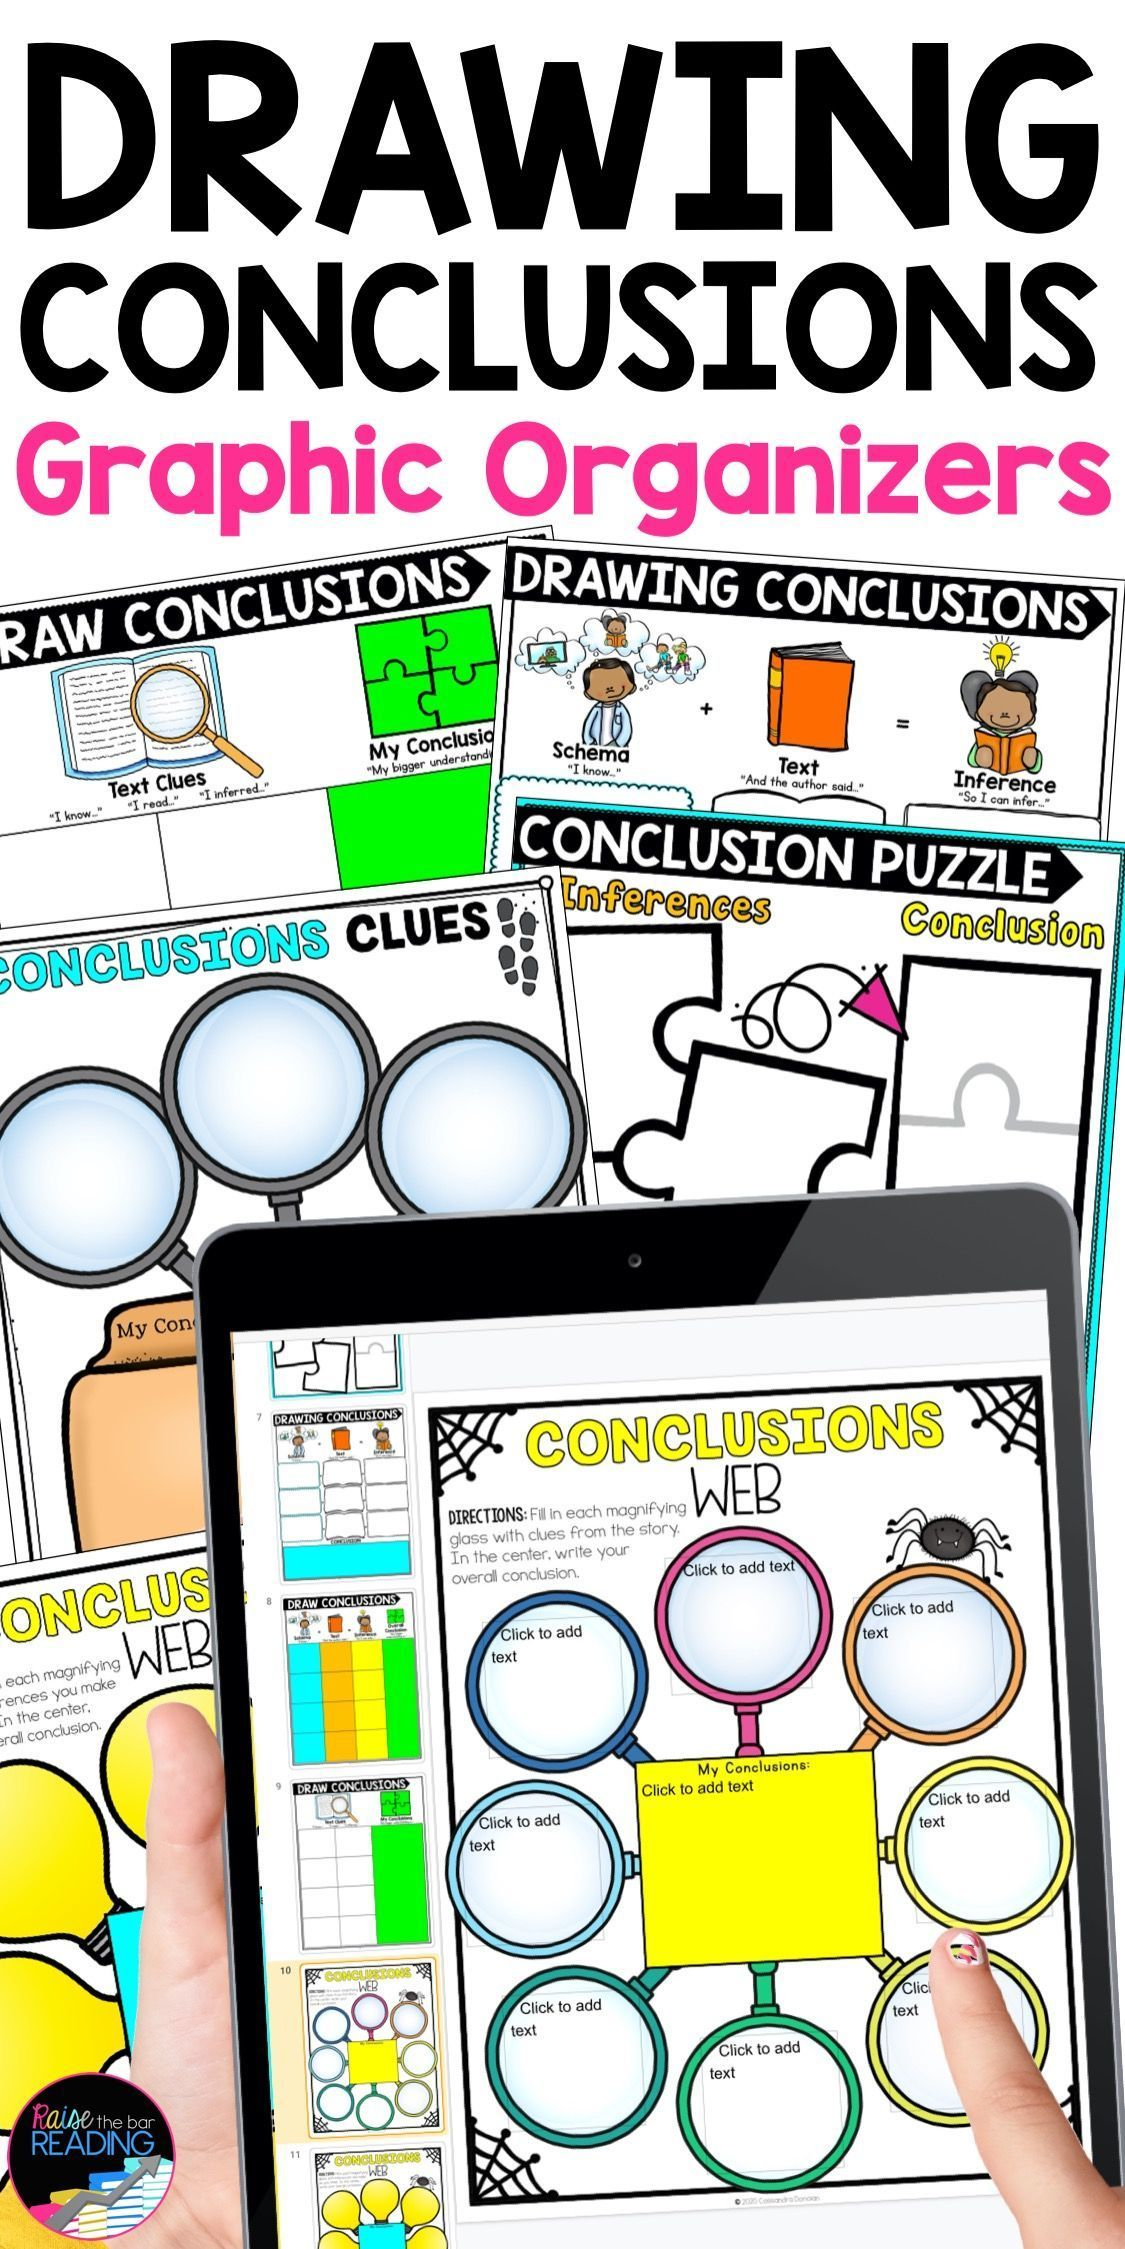 Drawing Conclusions Worksheets Paper Digital Reading Graphic Organizers Reading Graphic Organizers Graphic Organizers Drawing Conclusions [ 2249 x 1125 Pixel ]